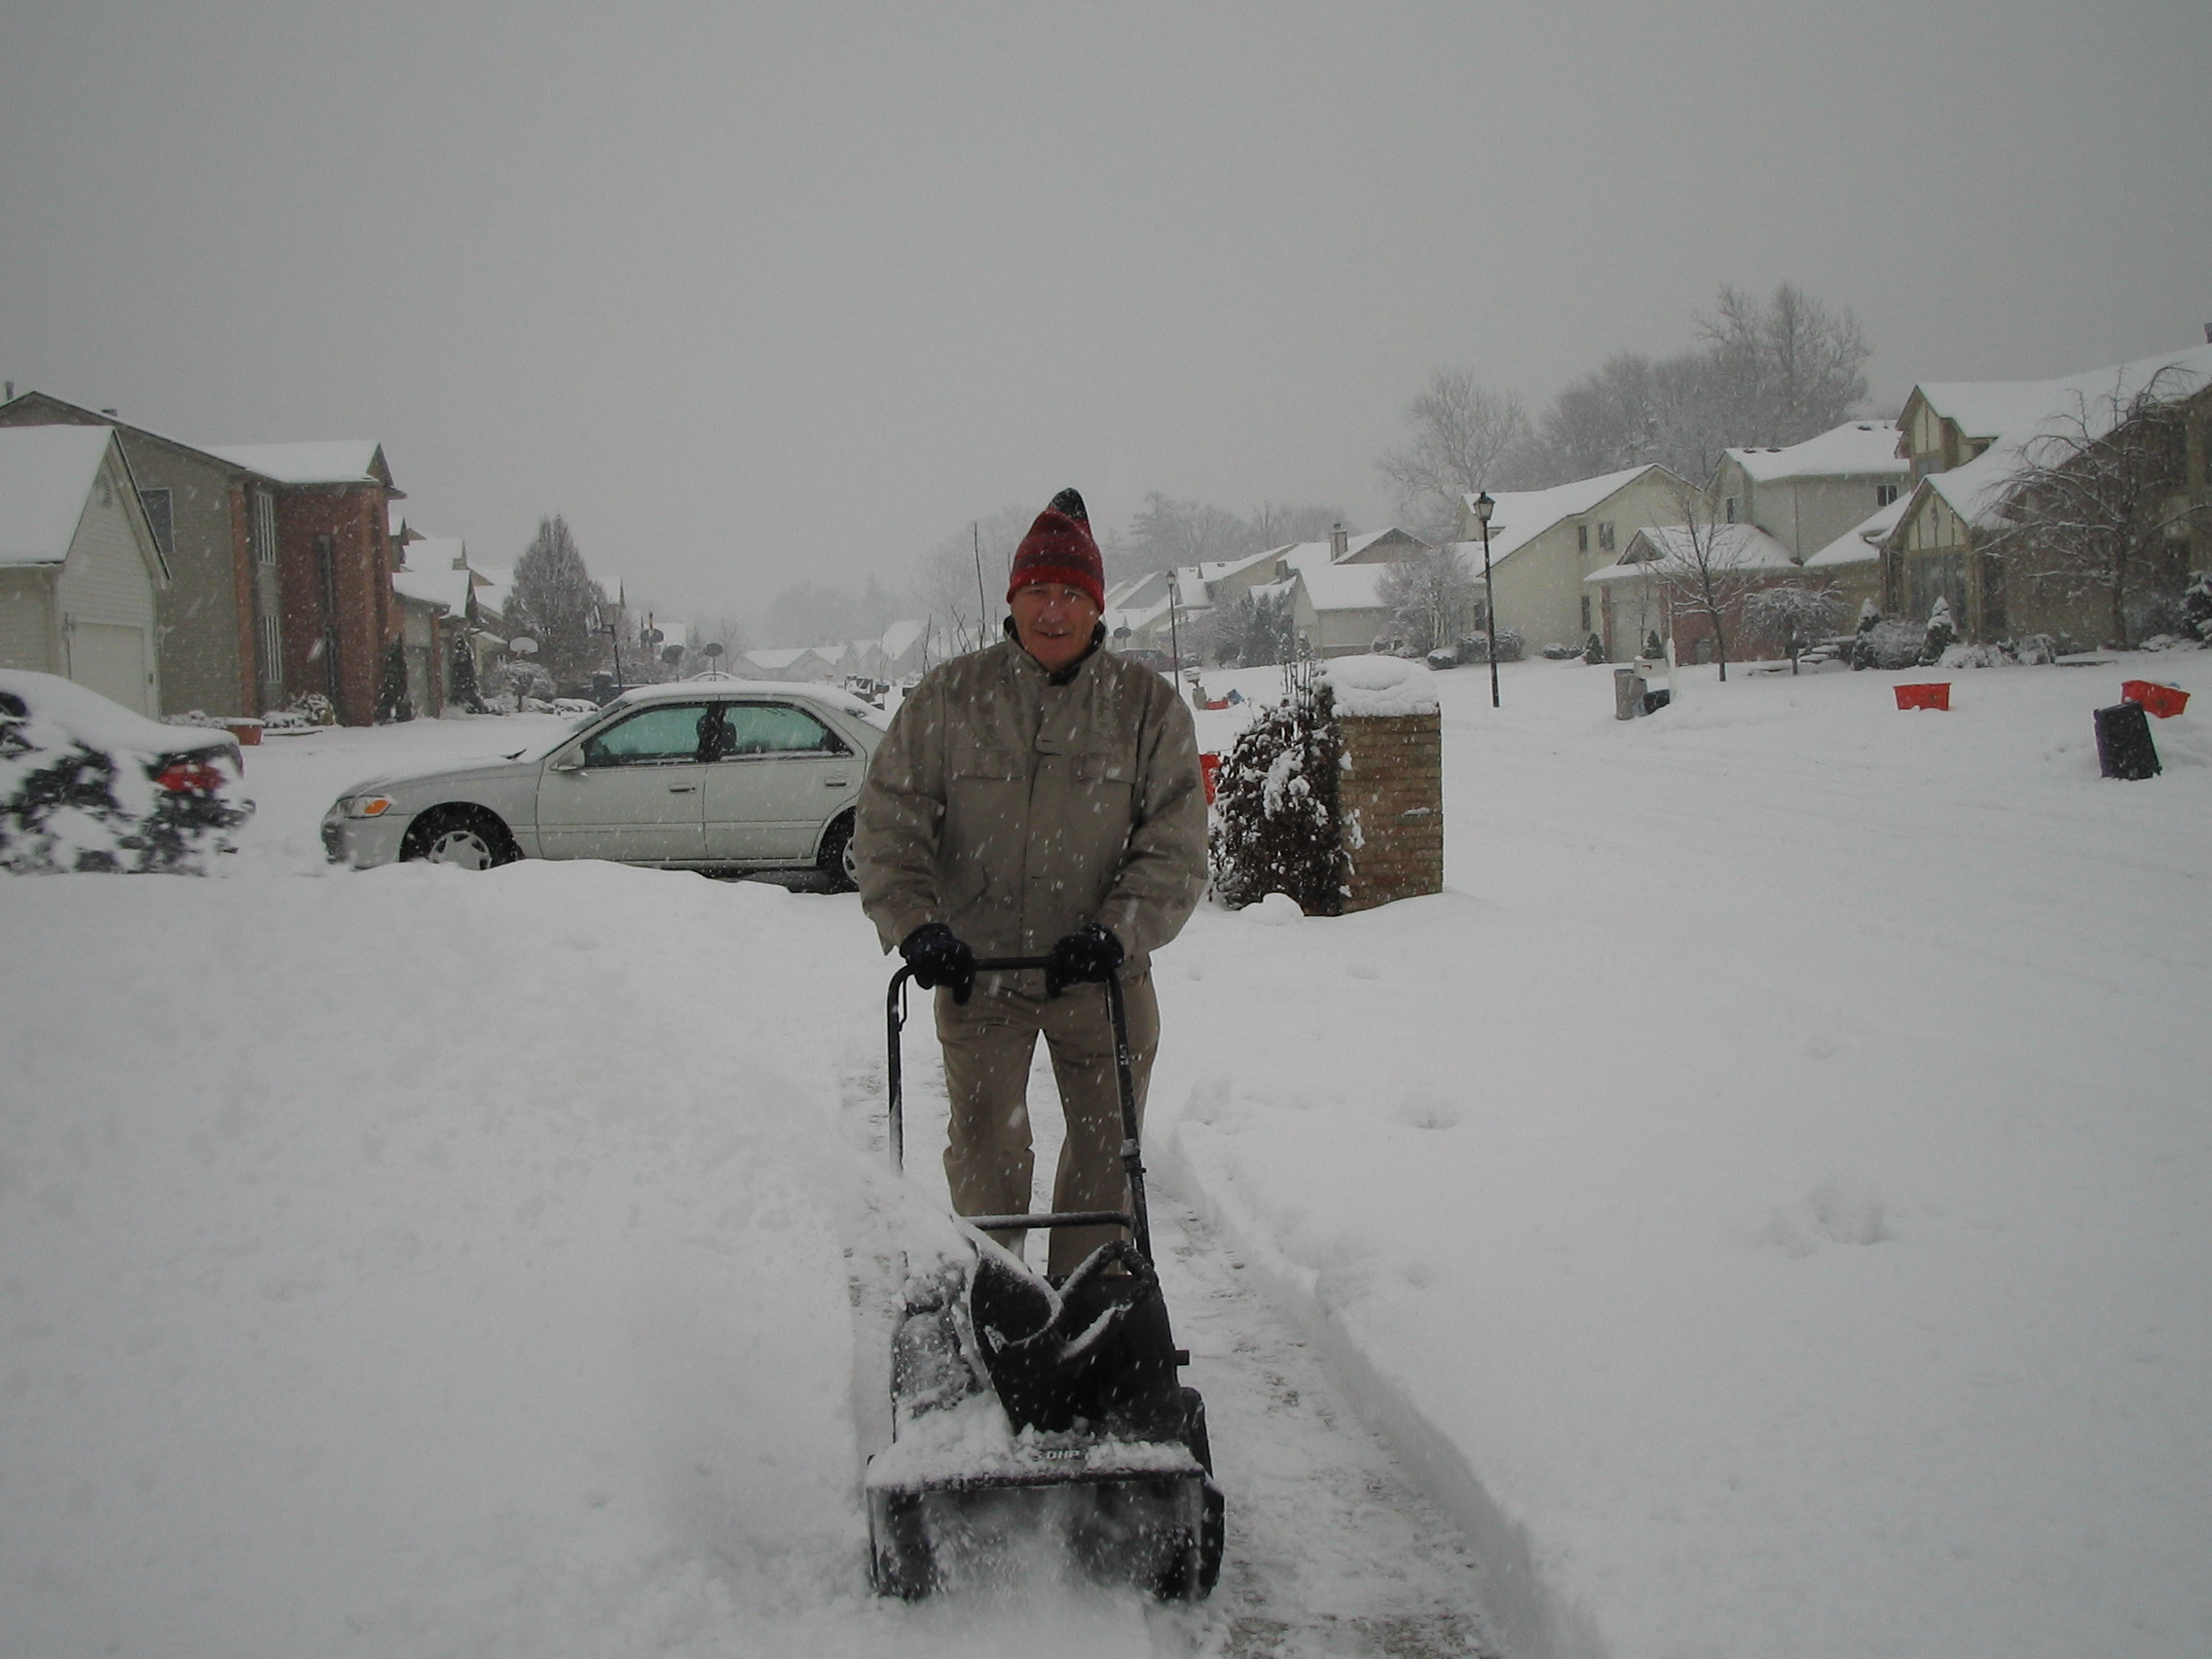 2005-12-15.snow_thrower.arthur.1.livonia.mi.us